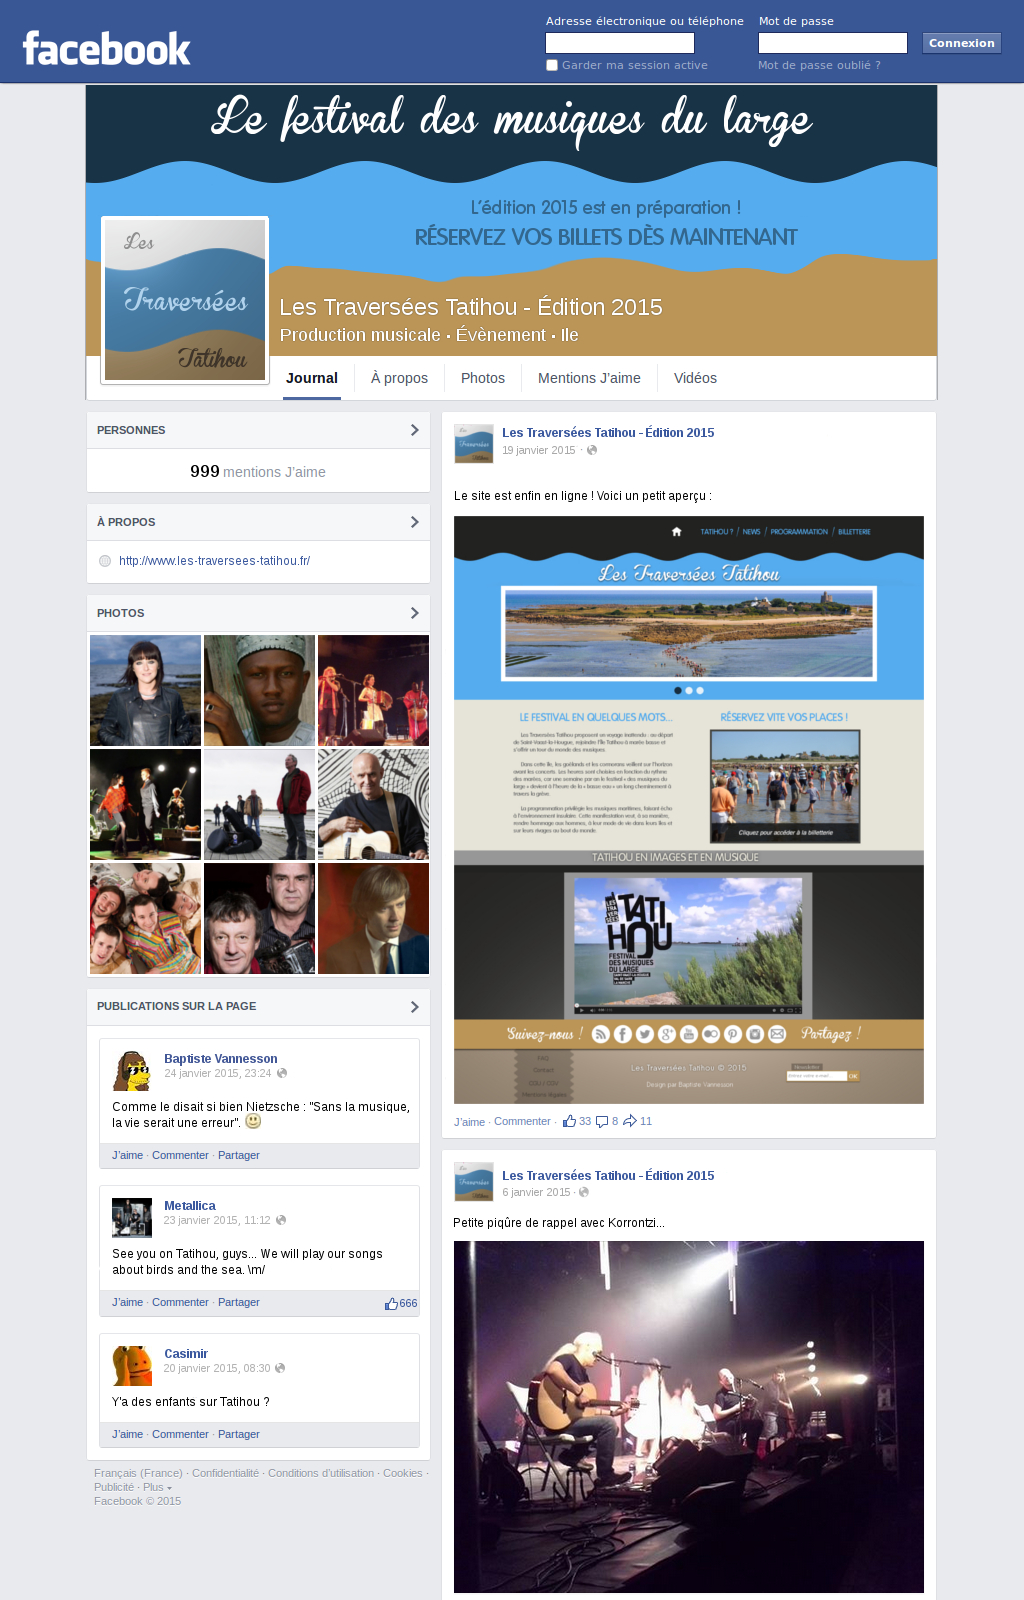 Projet 1 - Page Facebook